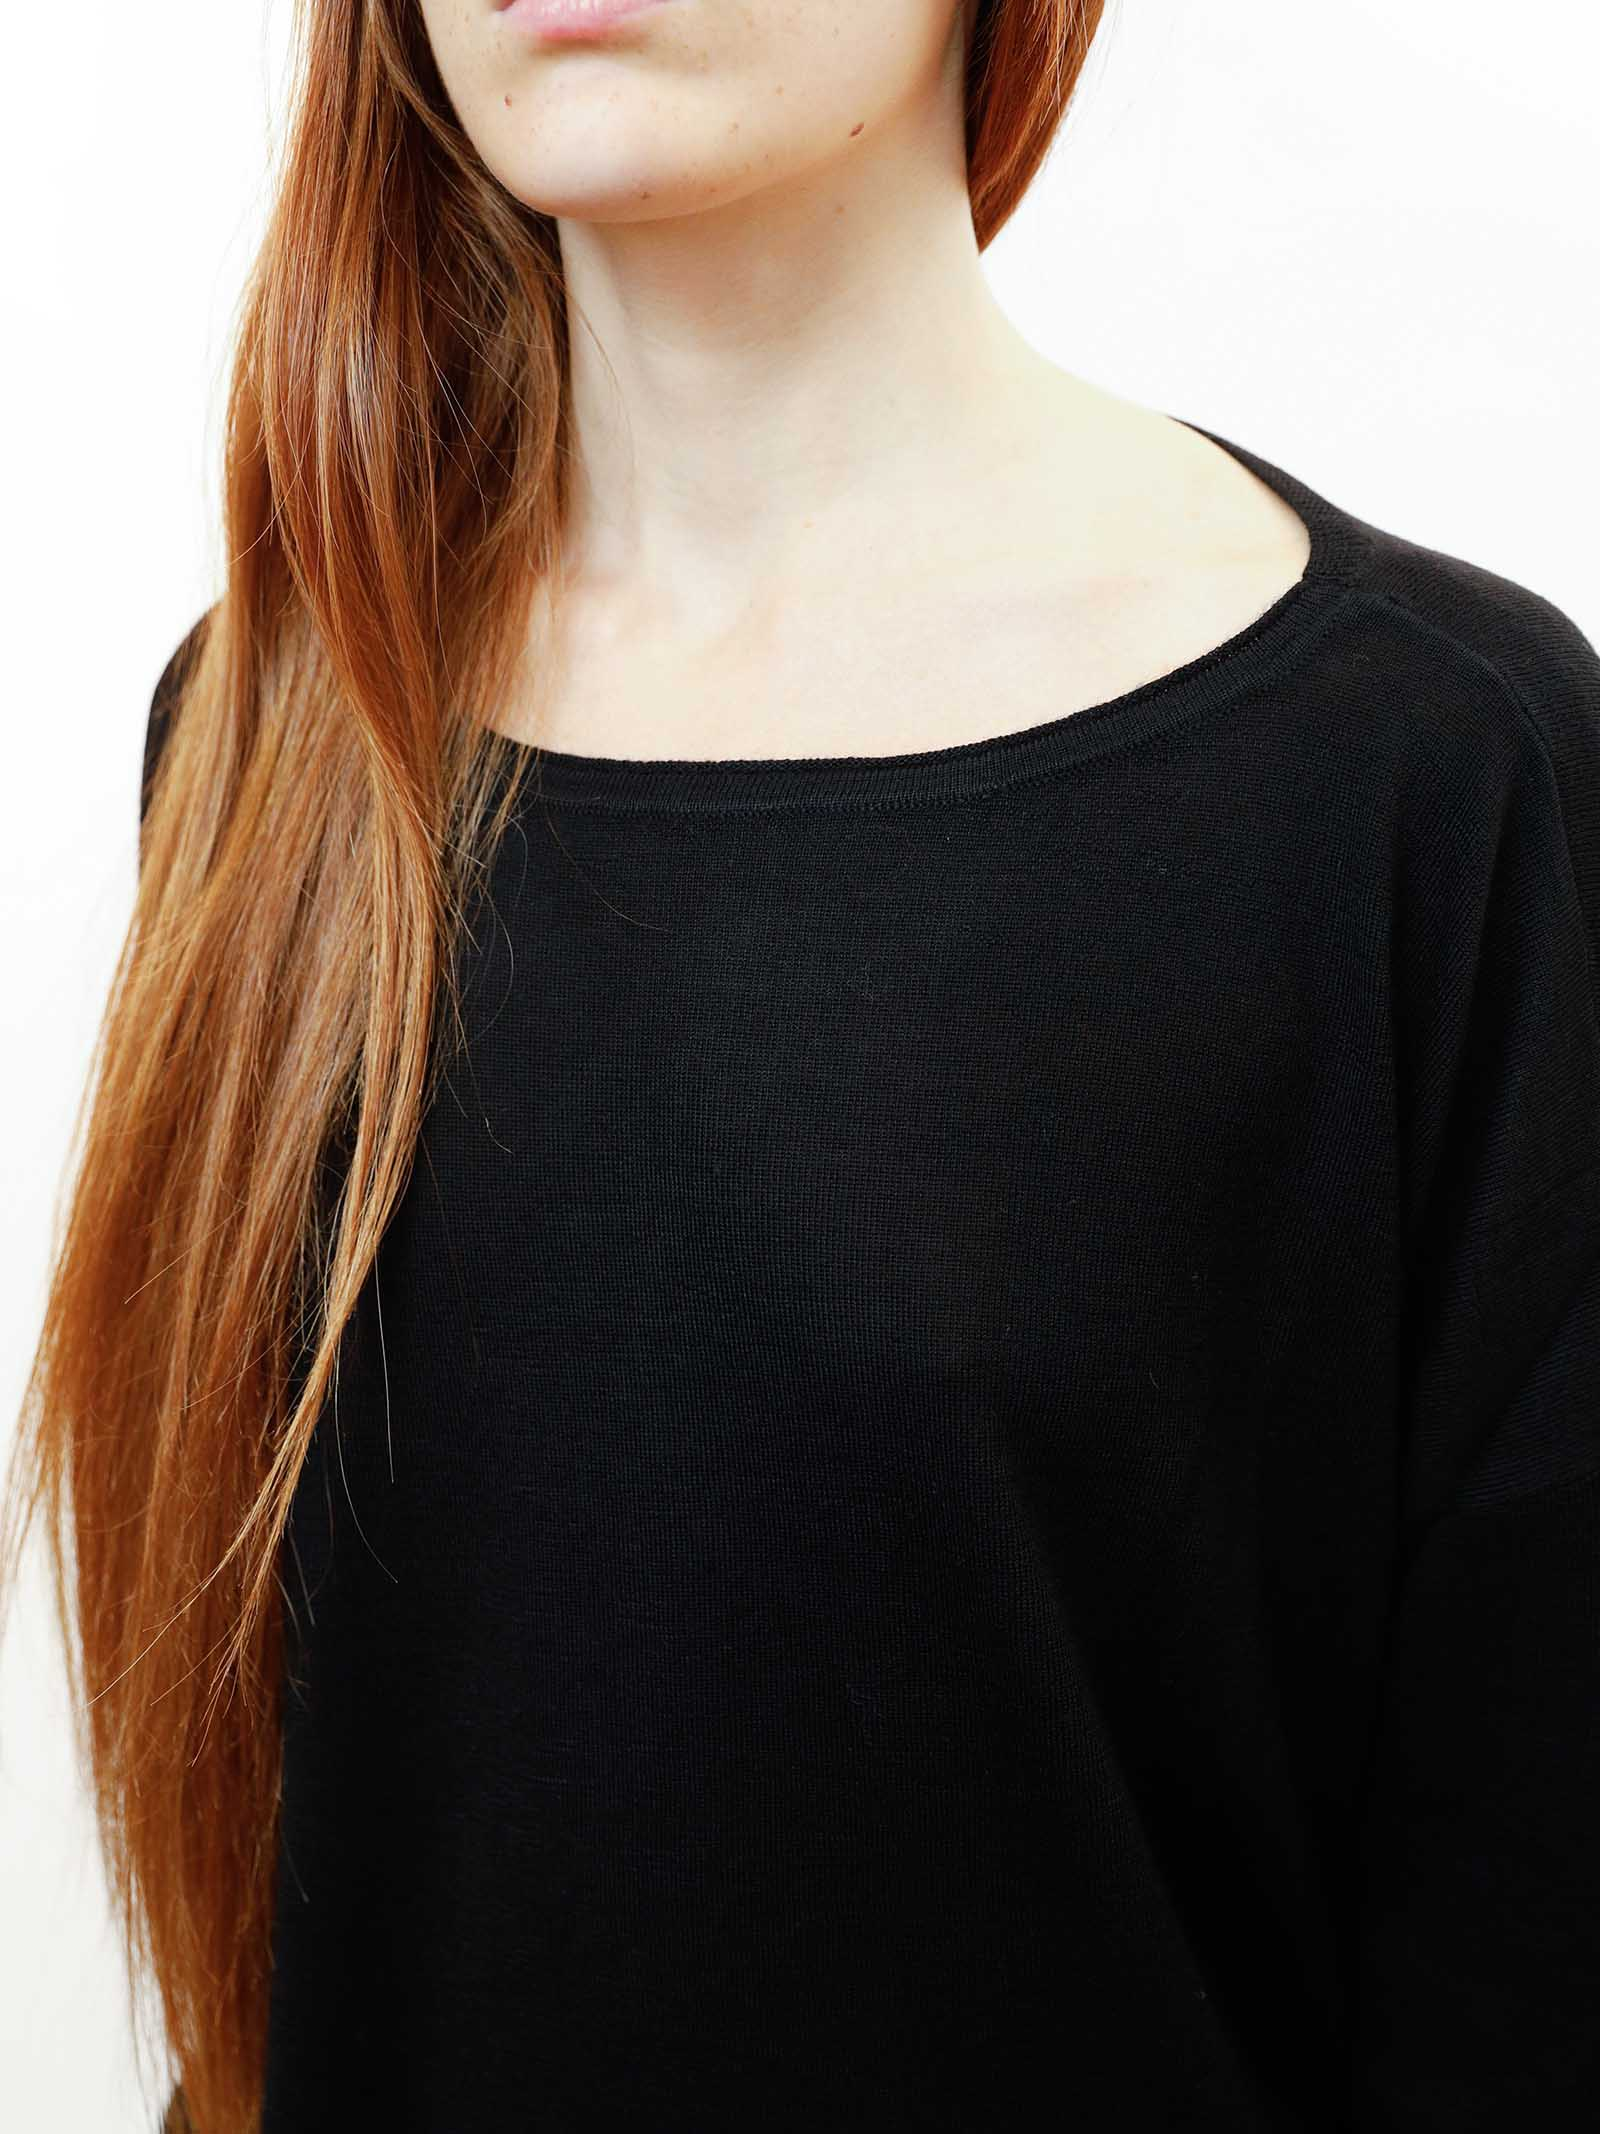 Women's Clothing Sweater Colours The World in Black Wool with Crew-neck Maliparmi | Knitwear | JQ48917423020000